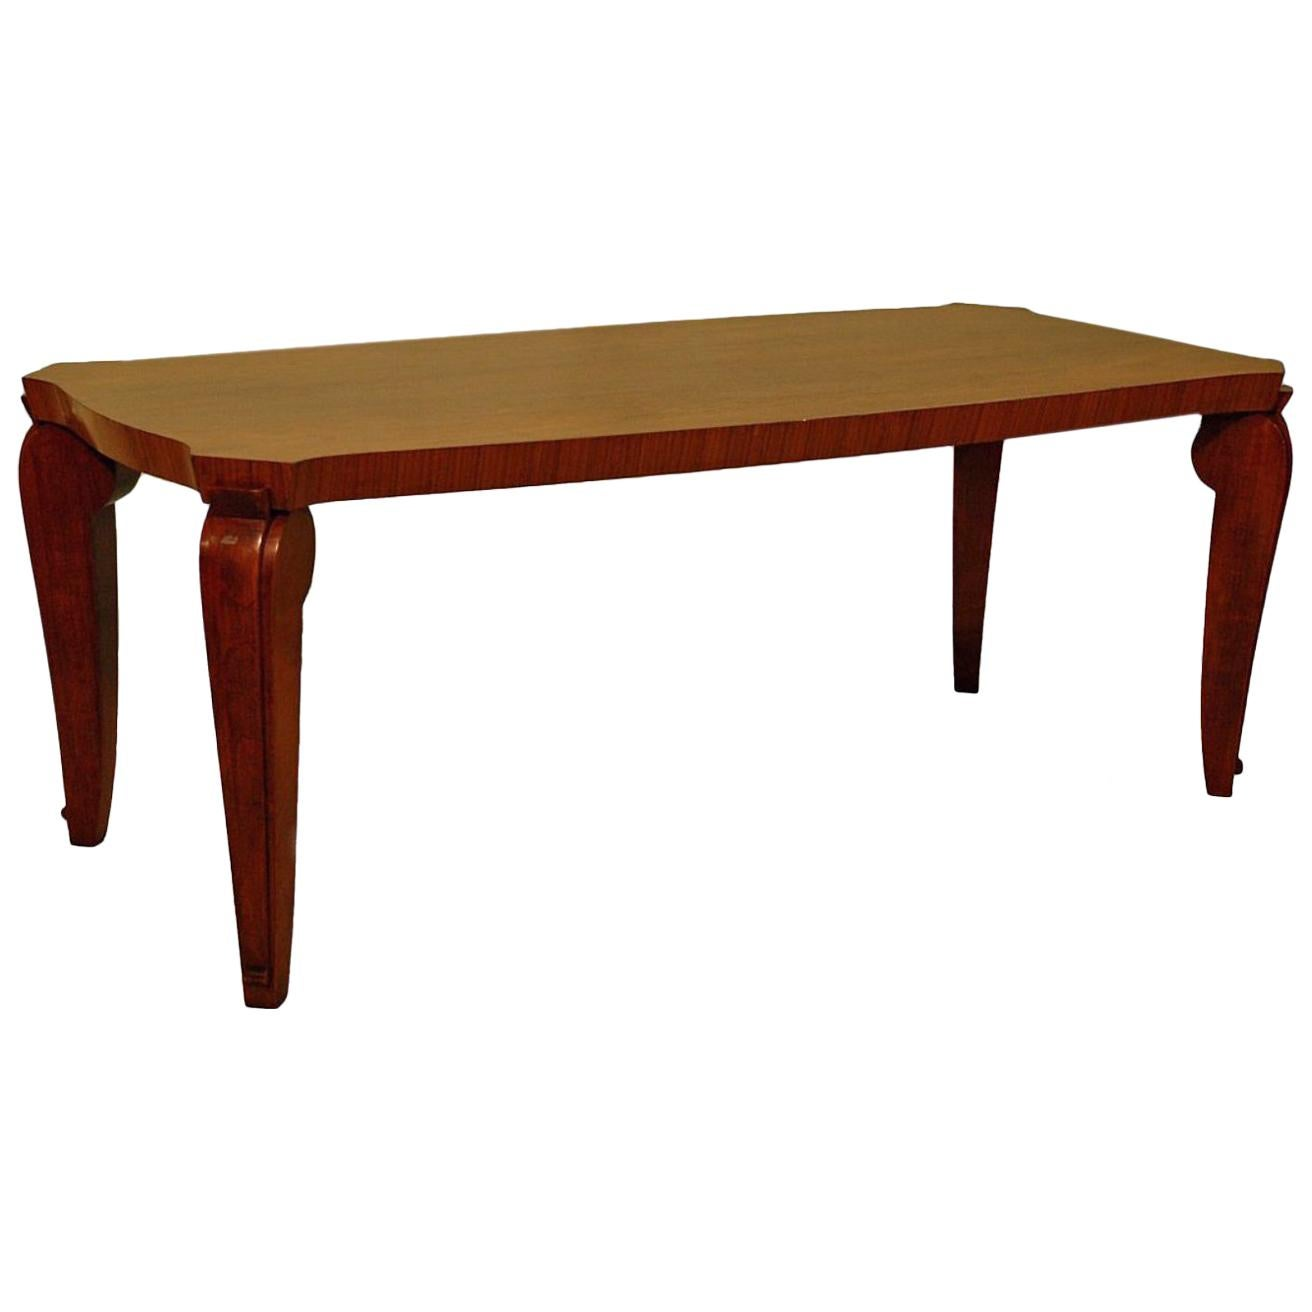 1940s Designer Wood Coffee Table Designed by André Arbus